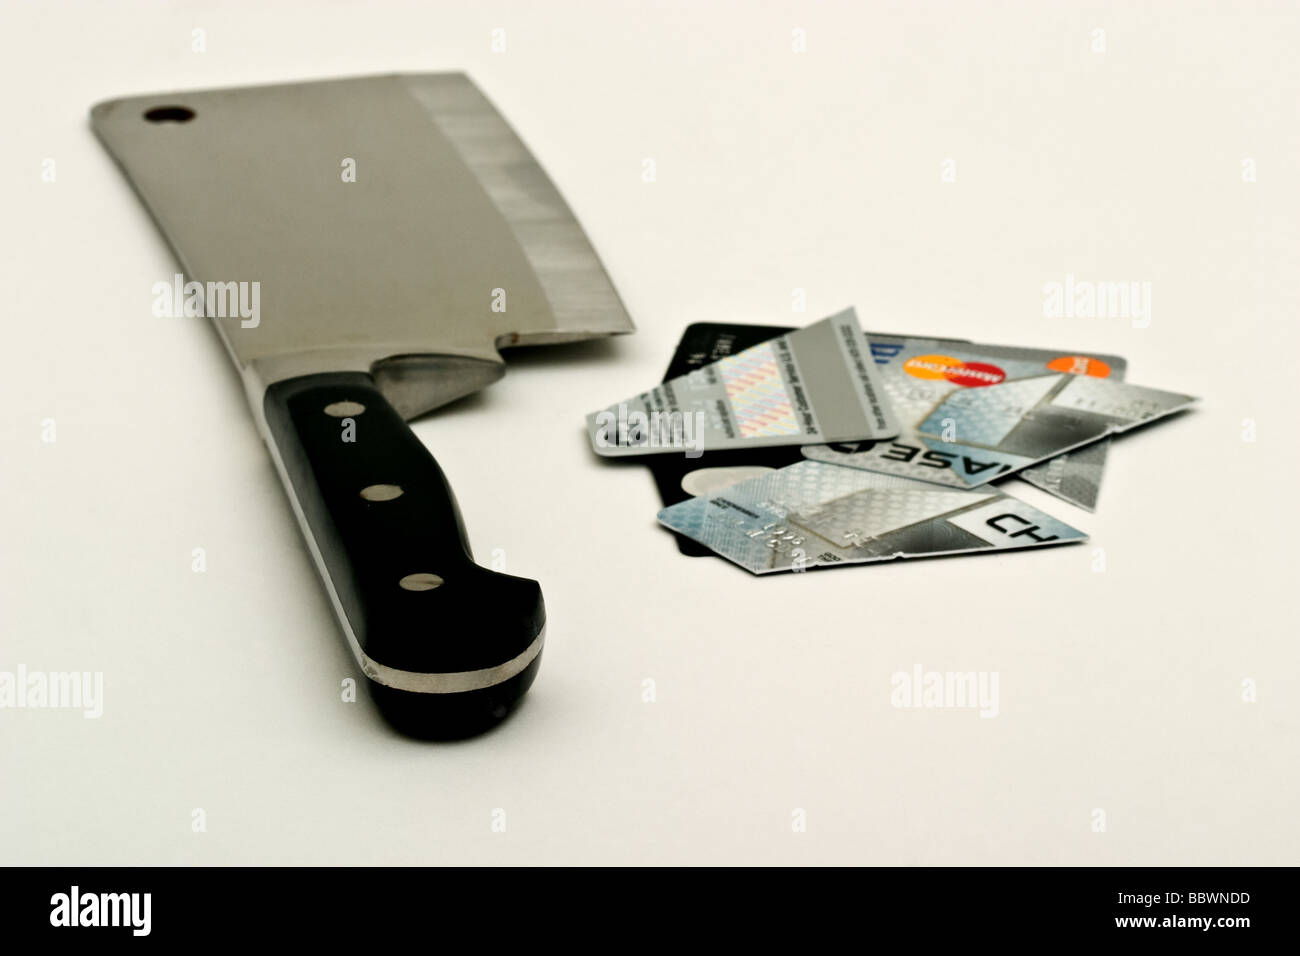 Large metal meat cleaver by a pile of chopped up credit cards - Stock Image